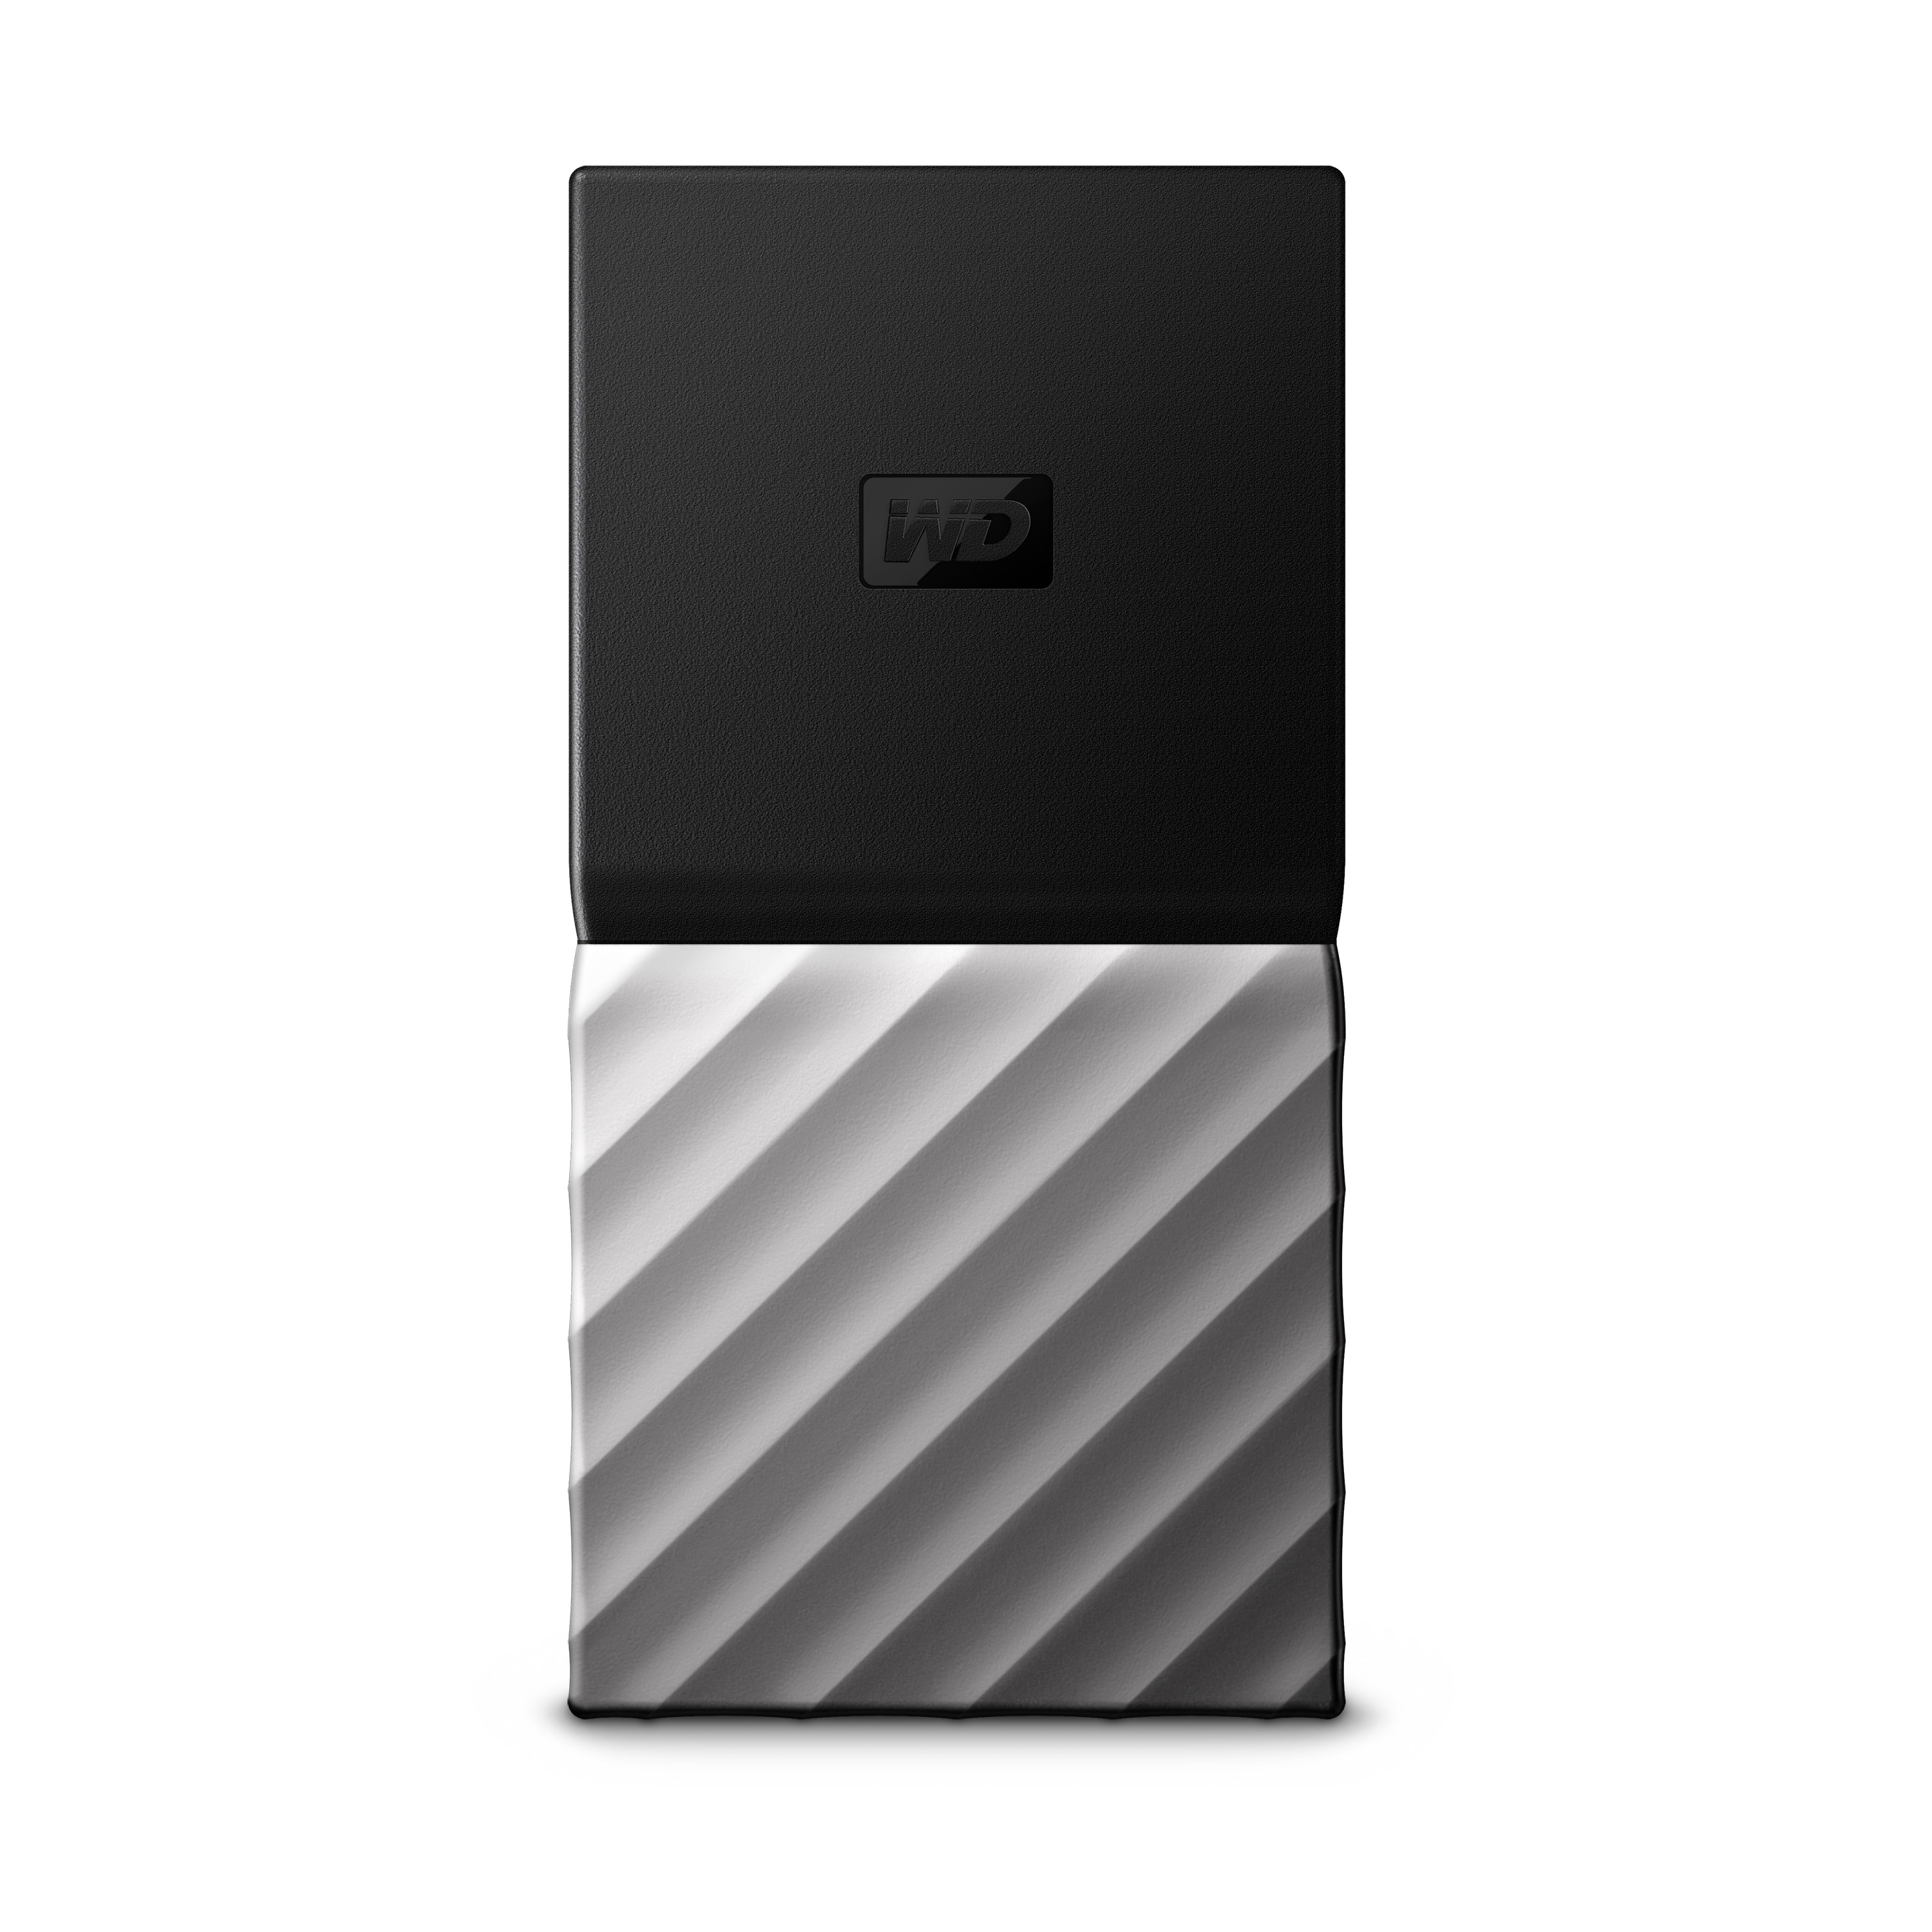 Western Digital Unveils WD My Passport SSD